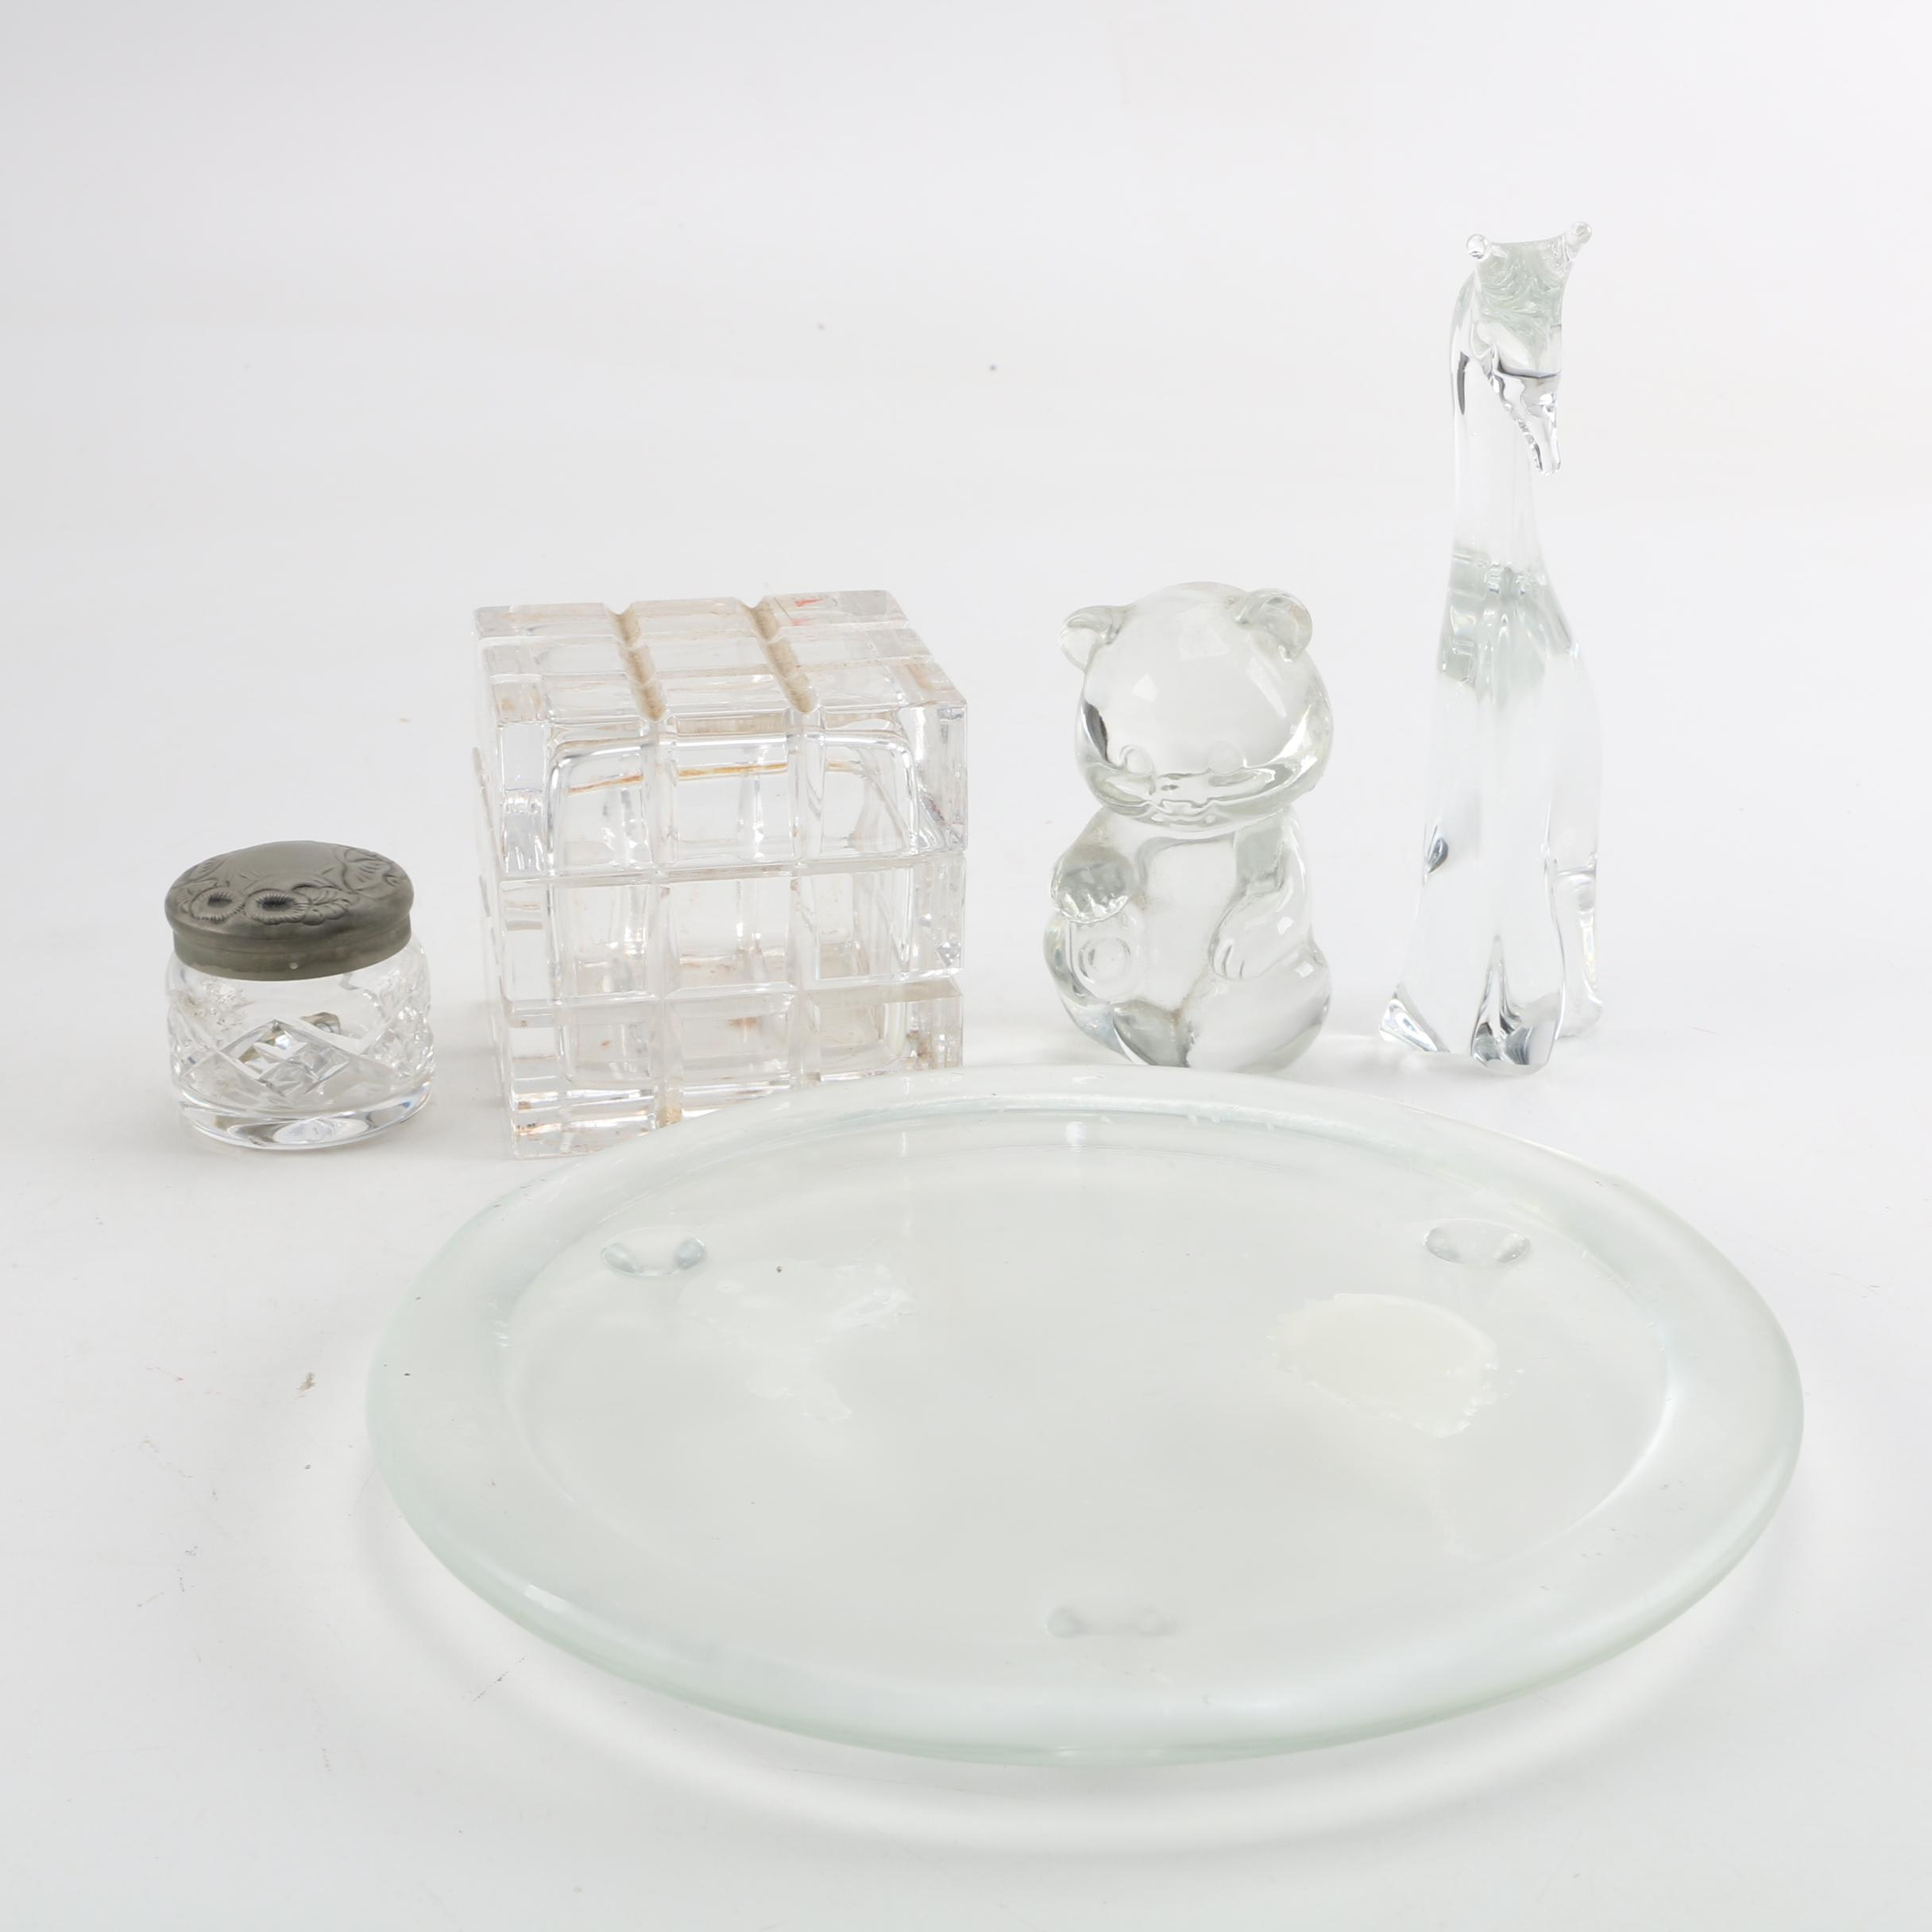 Waterford Crystal Covered Jar with a Glass Box, Figurines and Plate